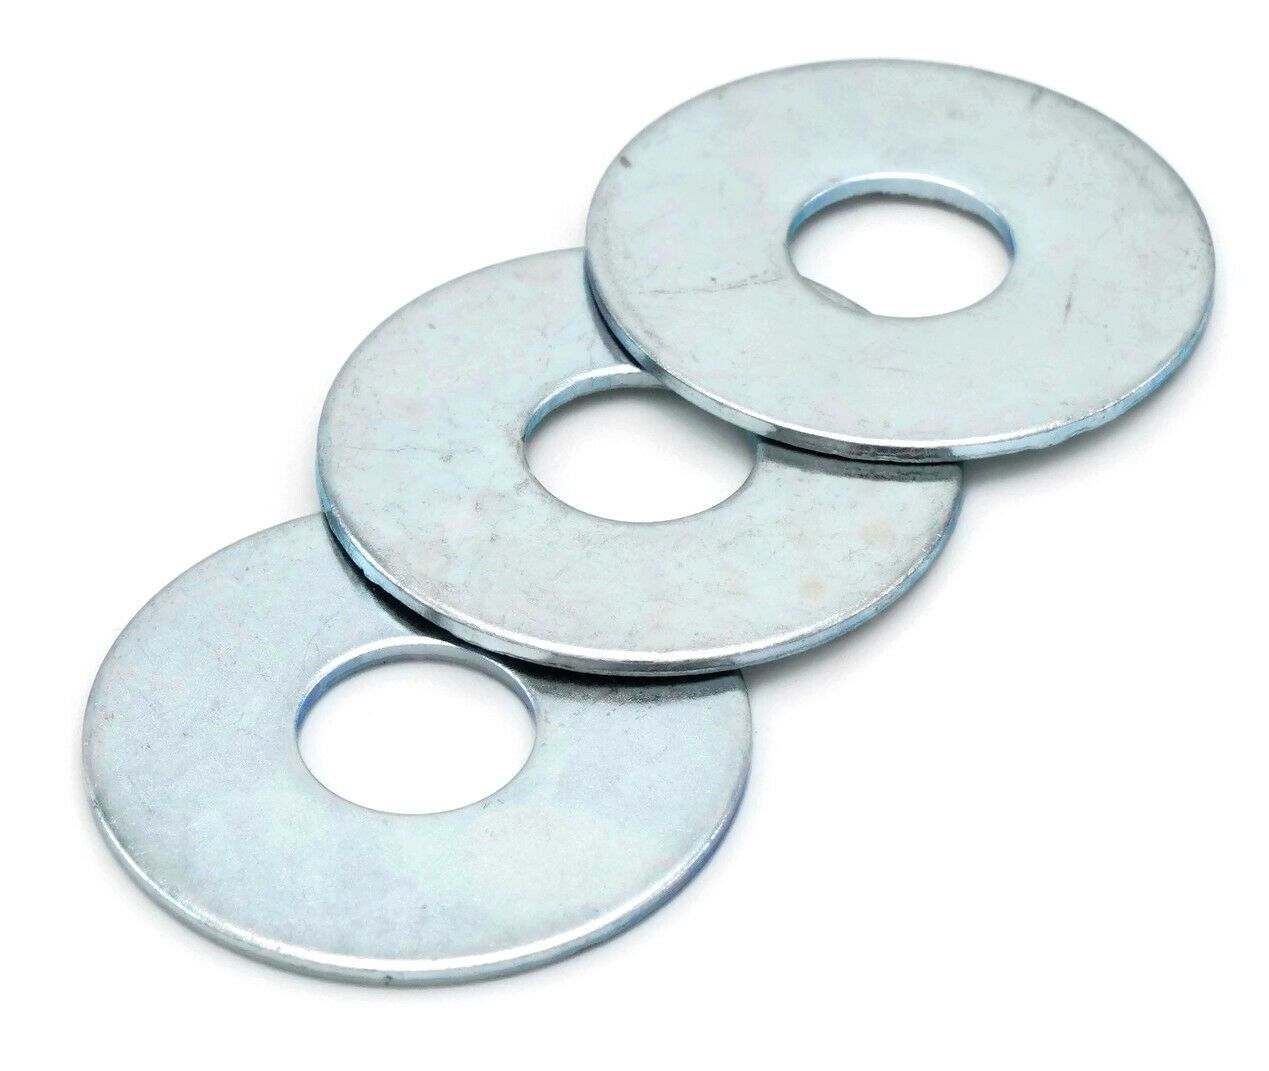 Details About Fender Washers Zinc Plated Steel Large Diameter Washers Sizes 1 8 1 2 Zinc Plating Square Plates Plastic Plates Walmart